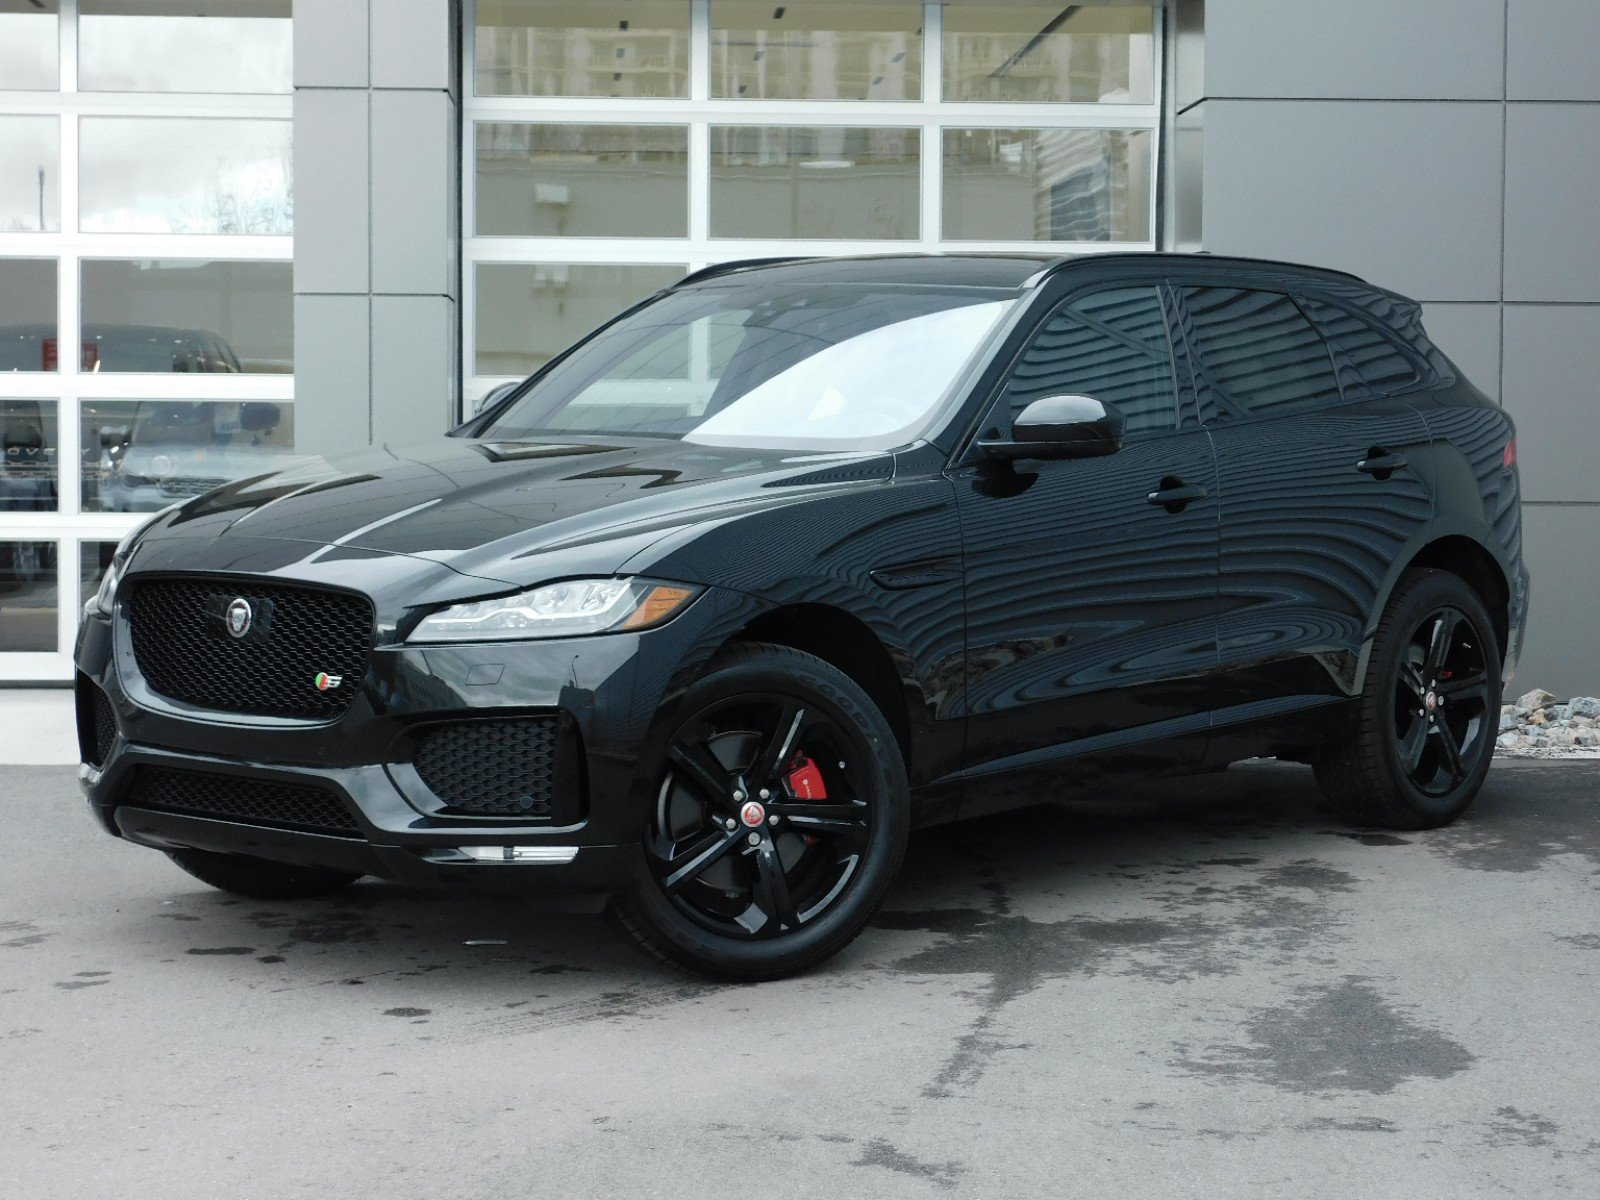 Jaguar S Type New Price Beautiful New 2019 Jaguar F Pace S with Navigation & Awd